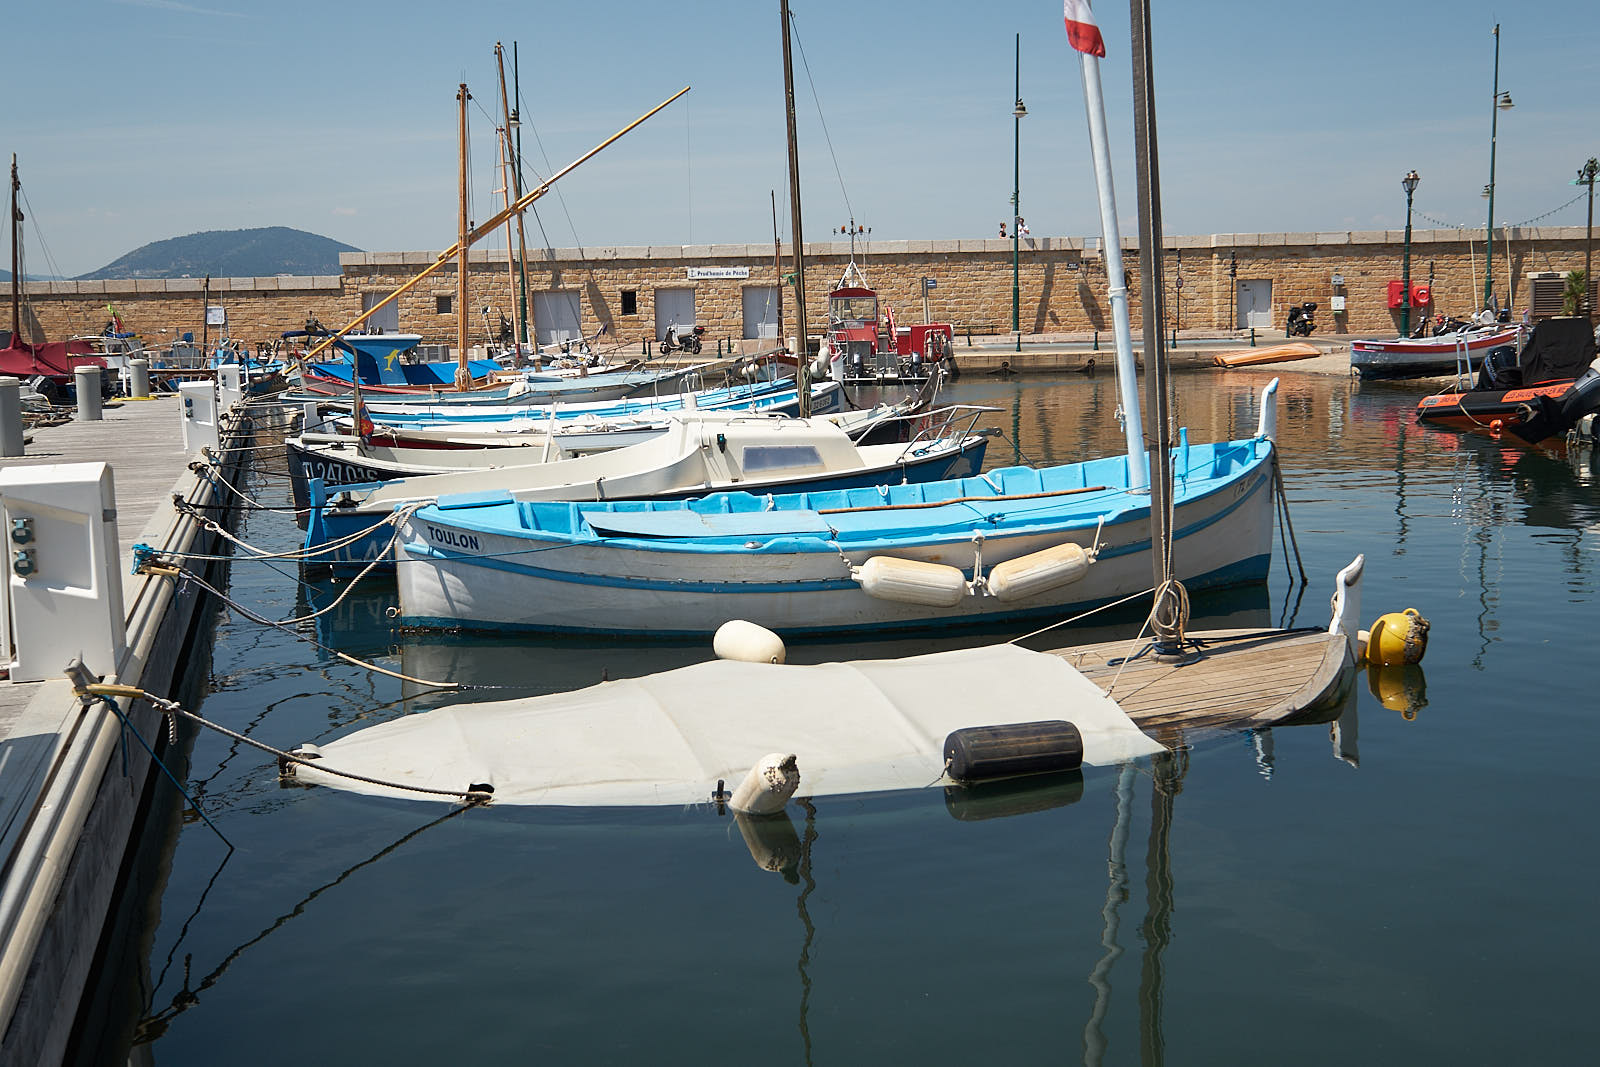 Hafen in Saint Tropez